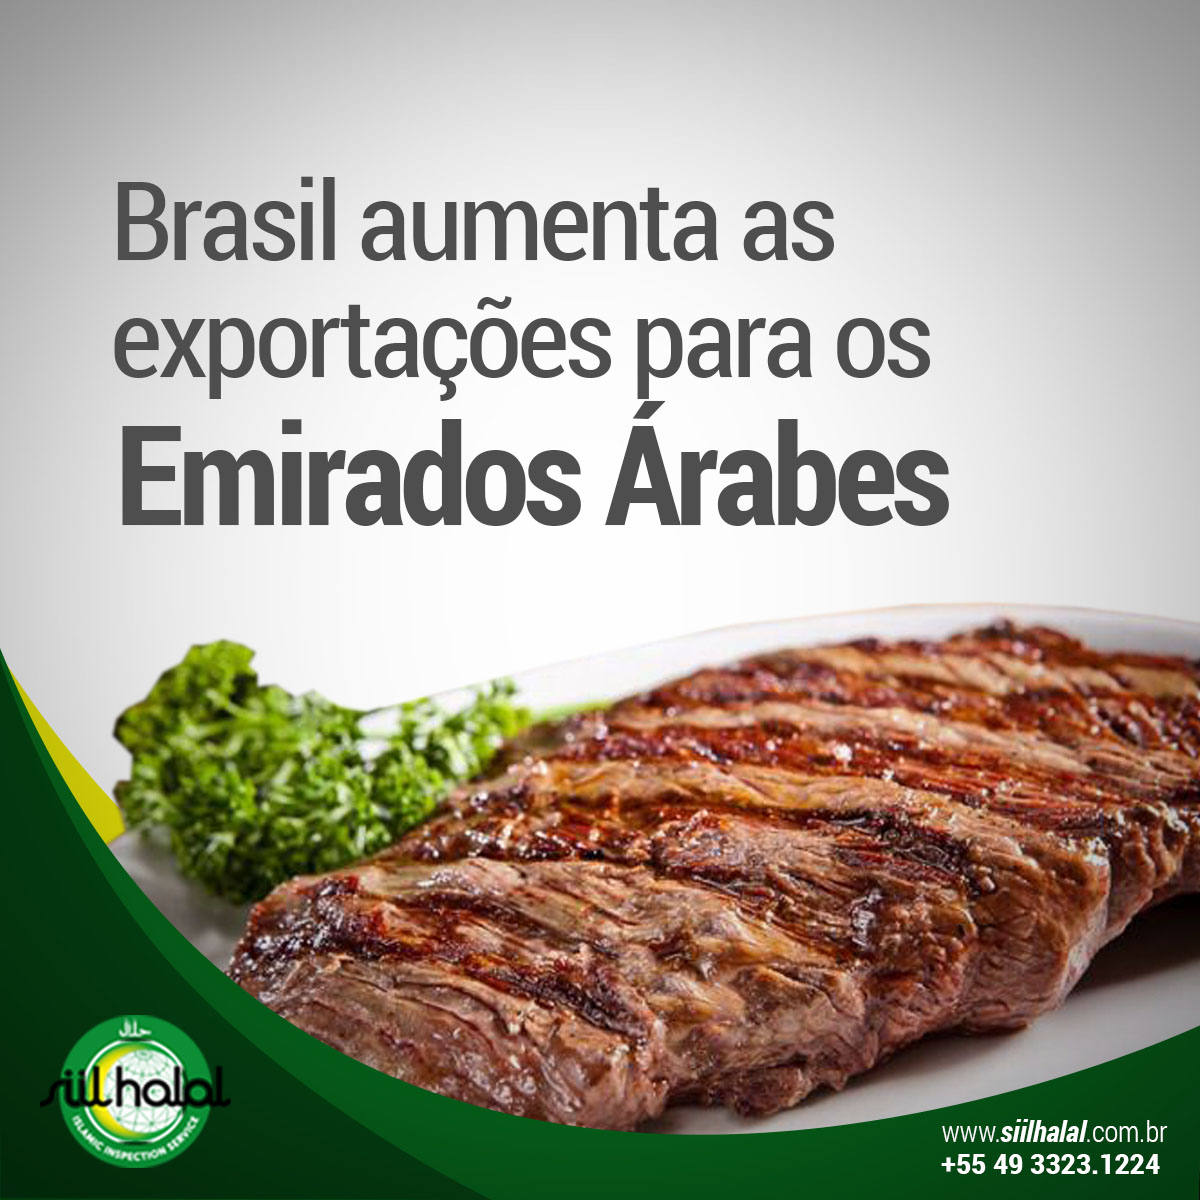 Beef exports from Brazil to UAE up 440%